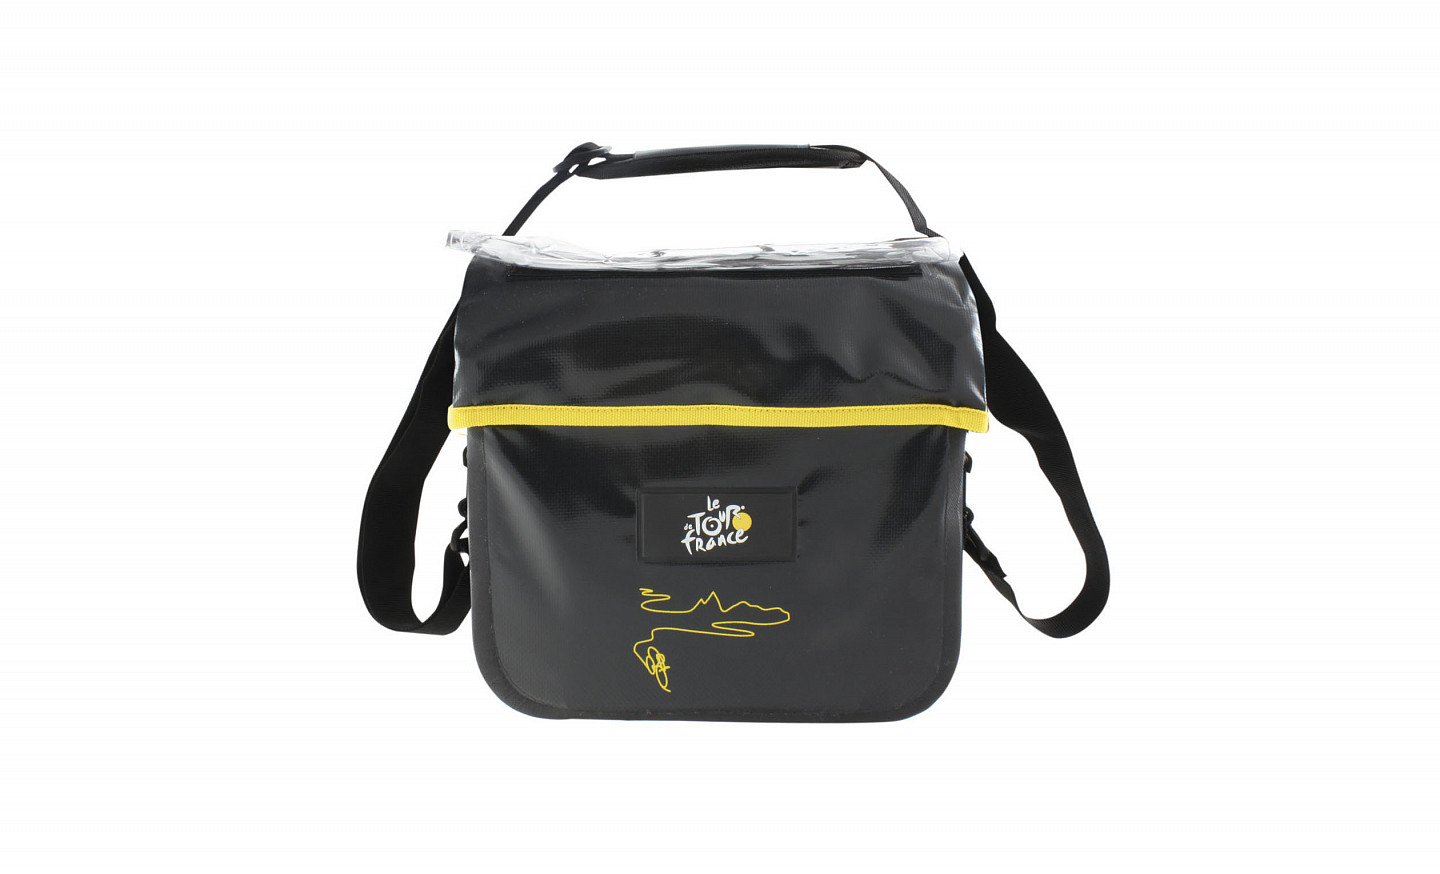 TOUR DE FRANCE Ottawa handlebar bag